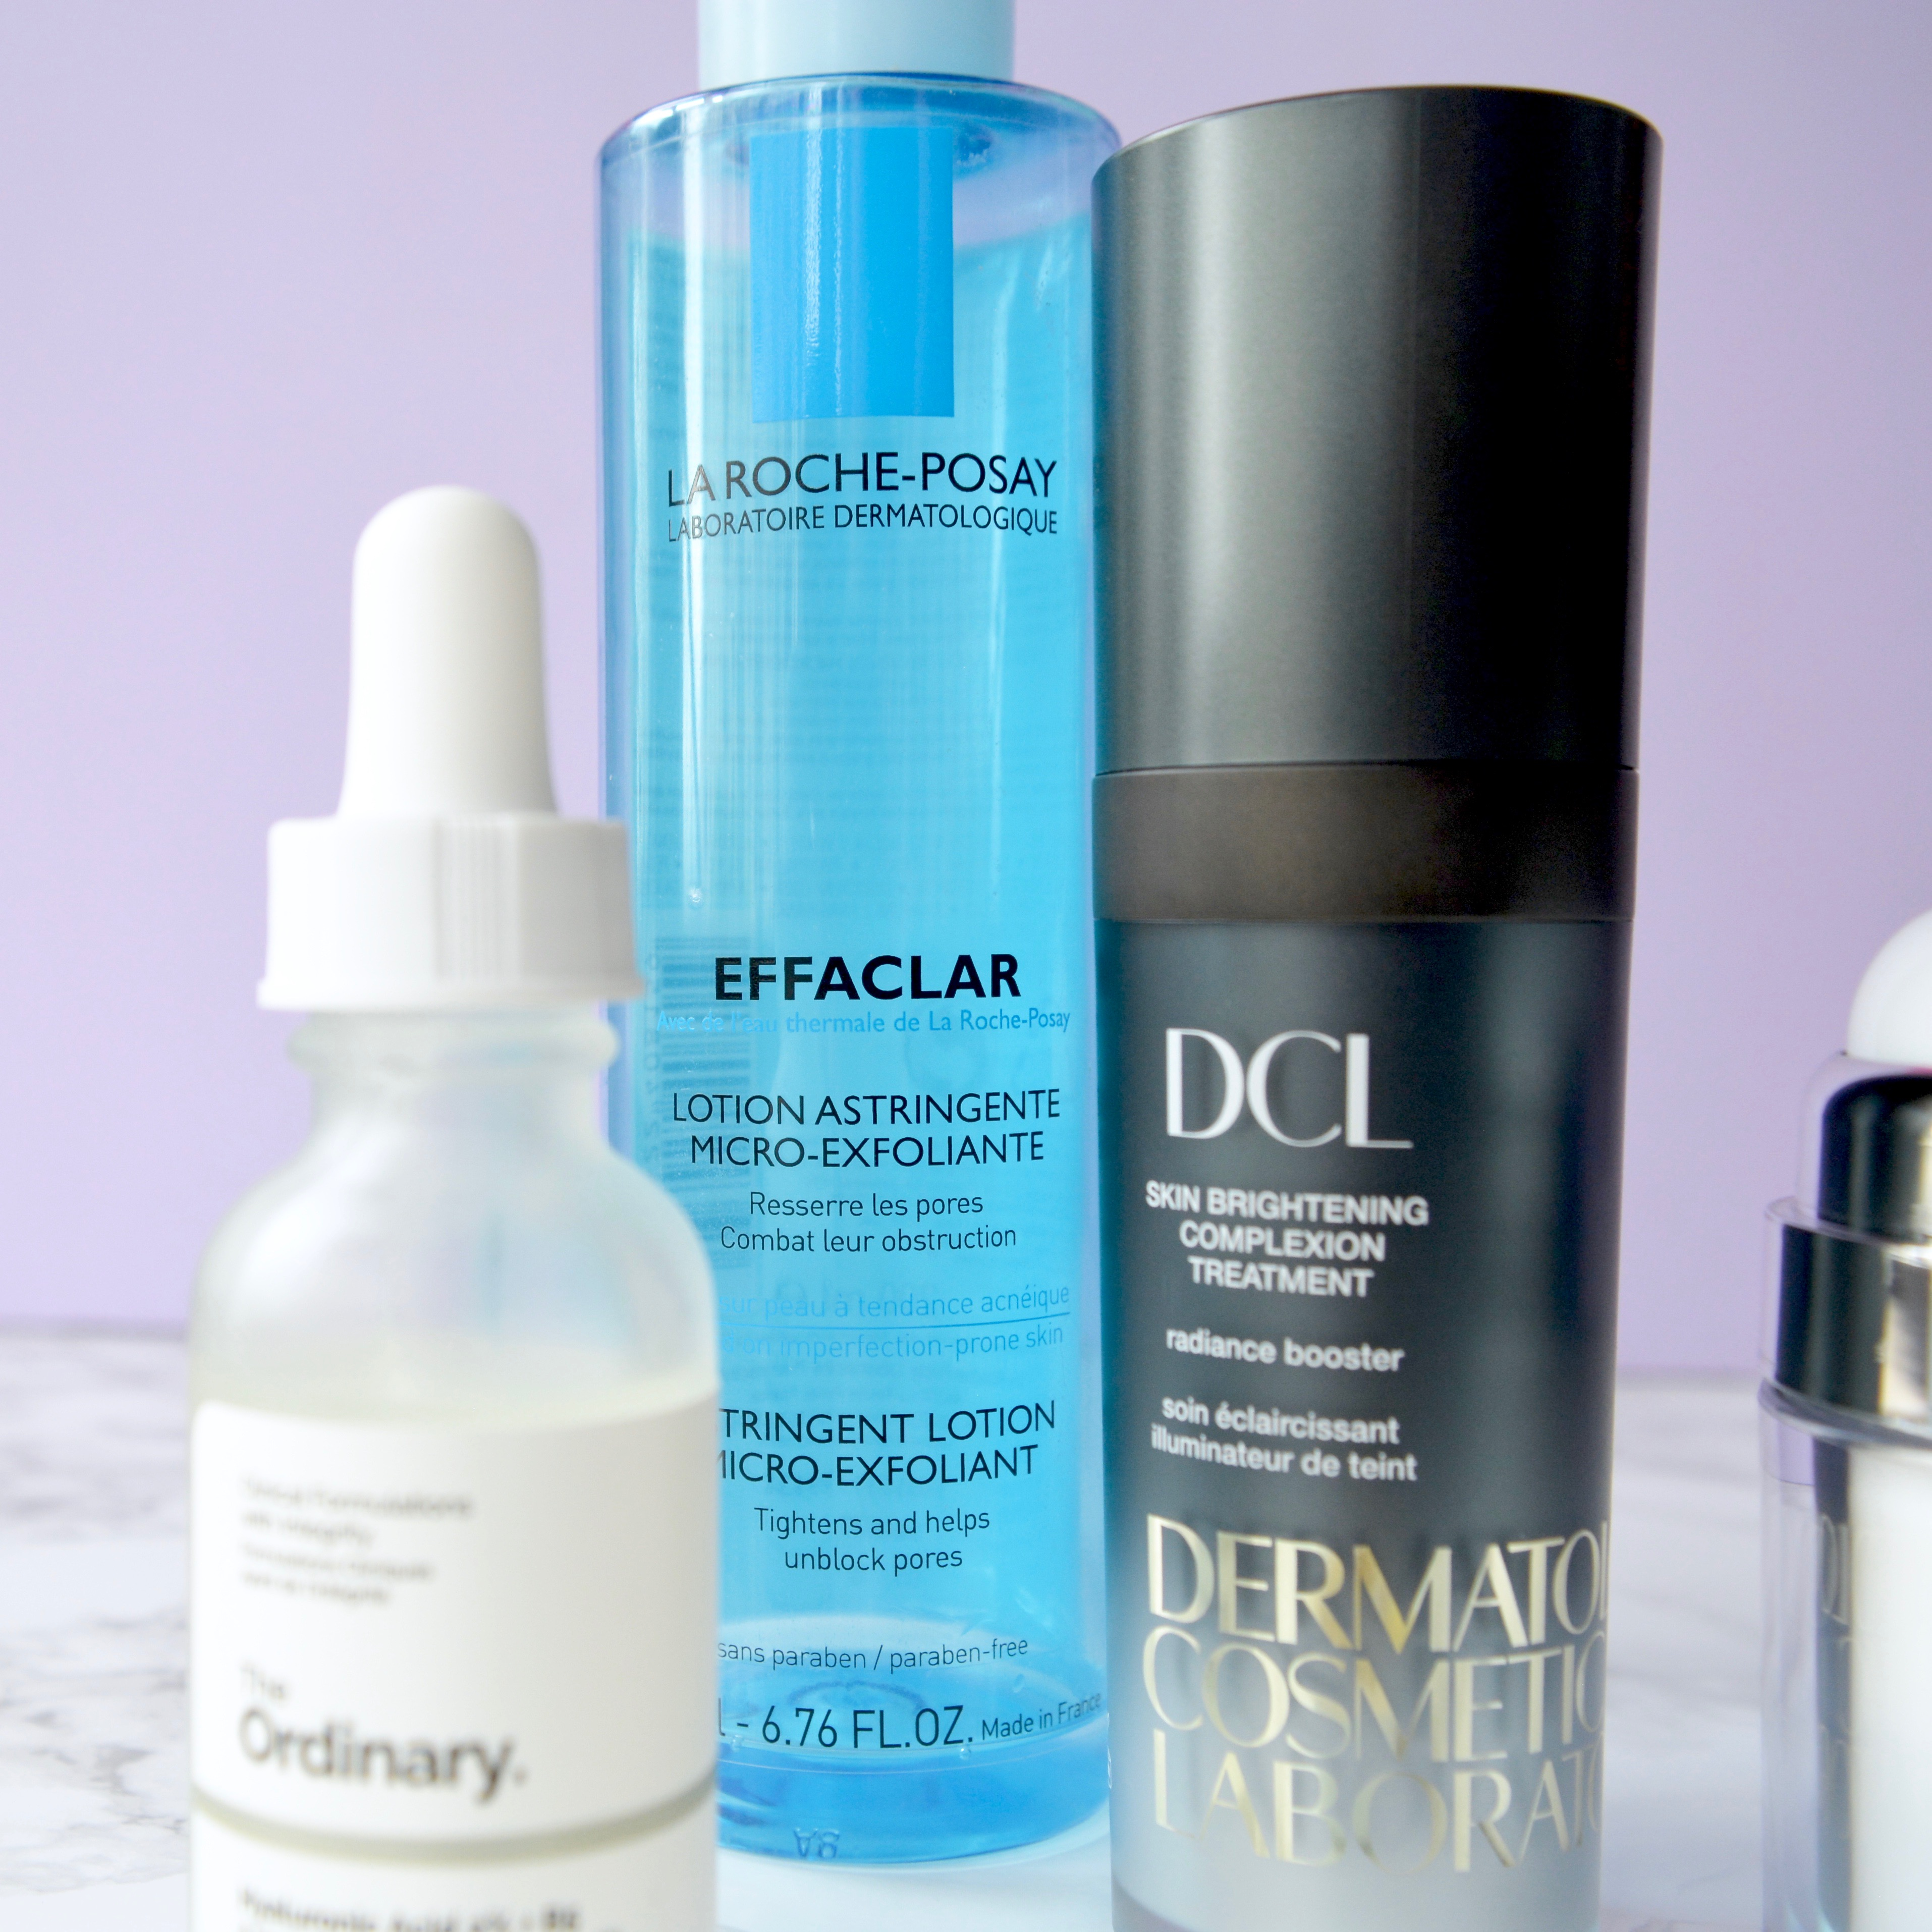 Skincare Shake Up: La Roche Posay Effaclar toner. Great recommendations for rosacea/sensitive skin